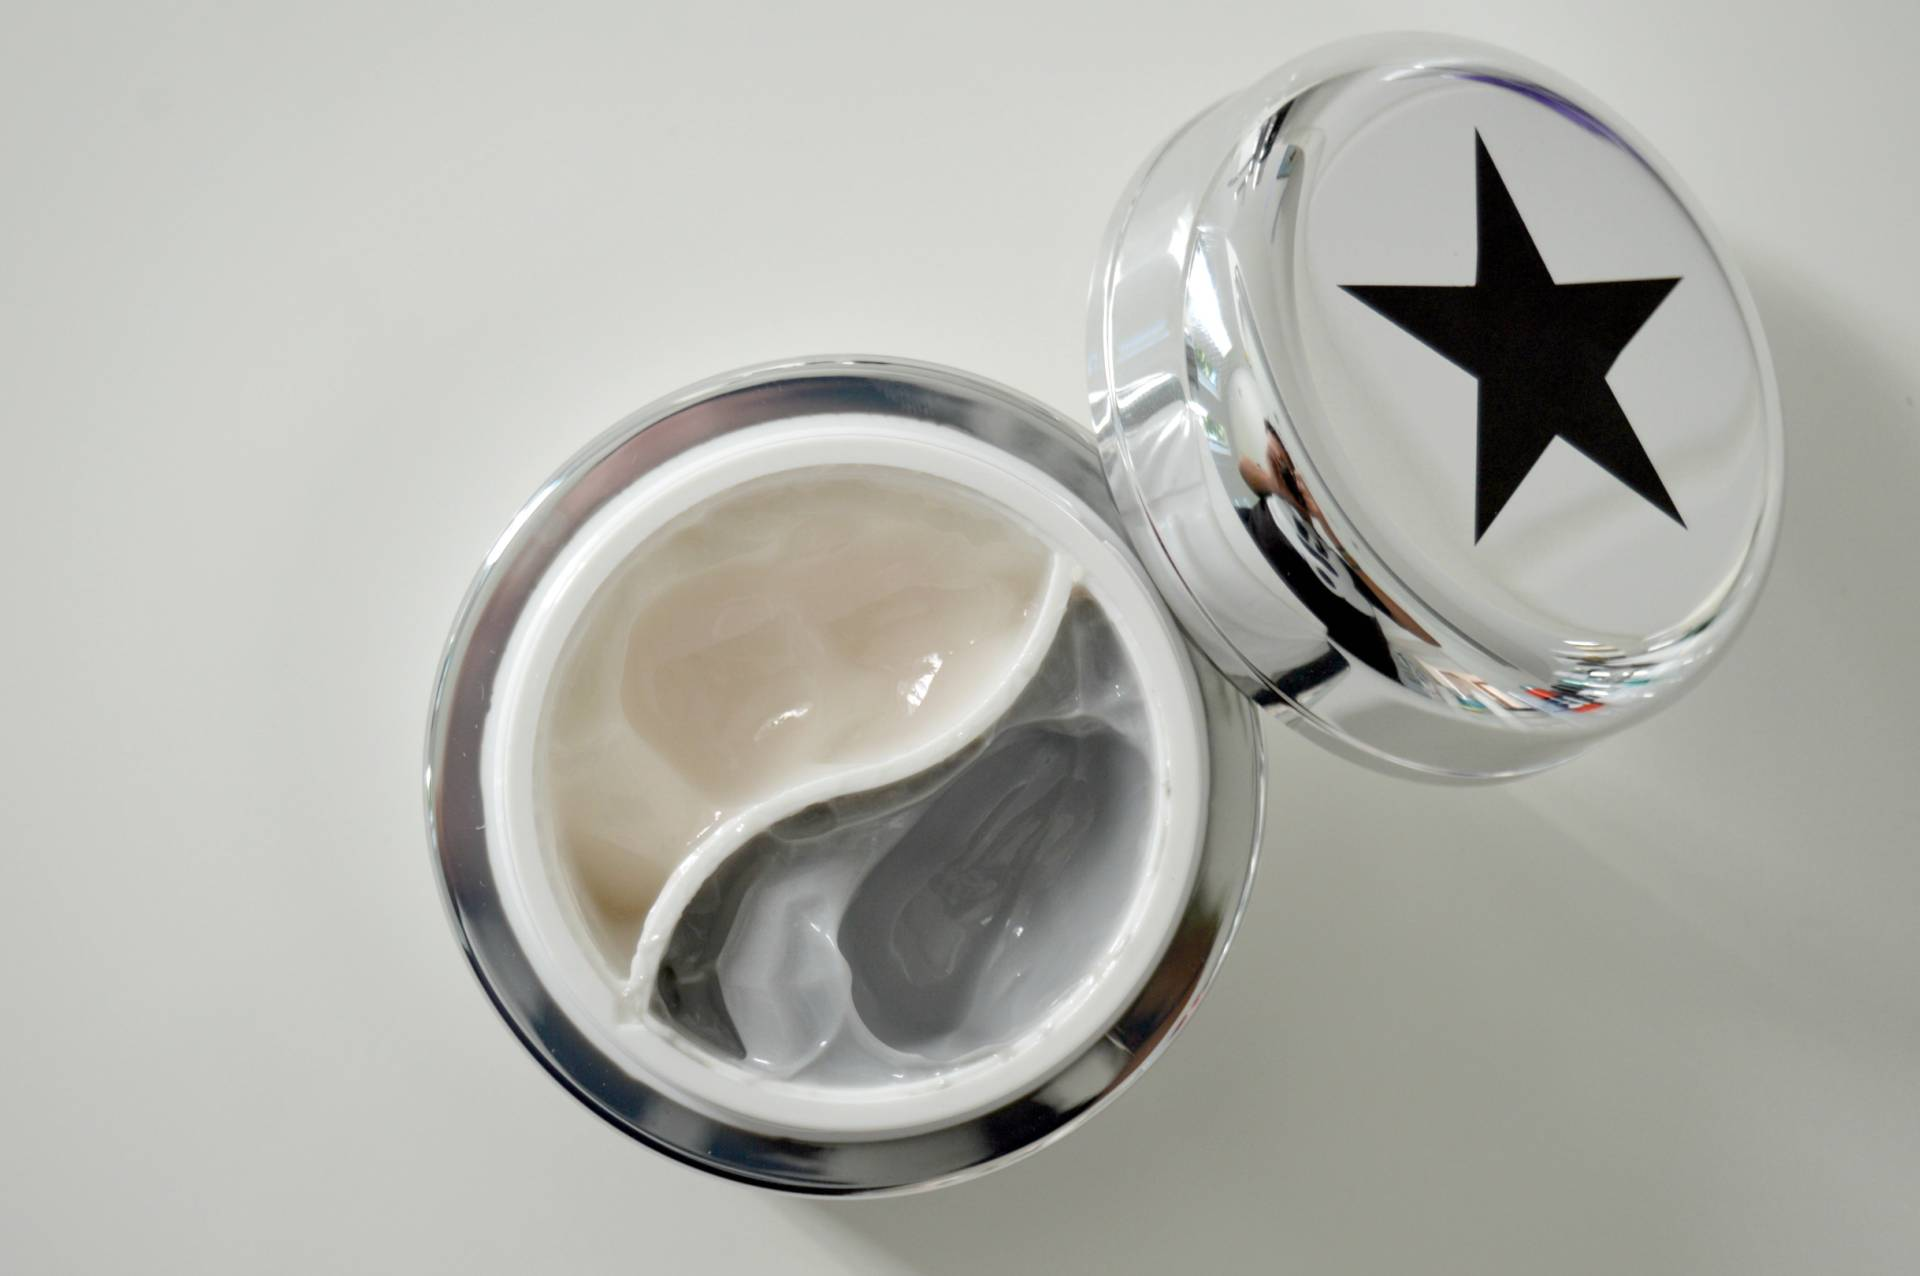 glamglow-dreamduo-two-phase-overnight-treatment-review-inhautepursuit